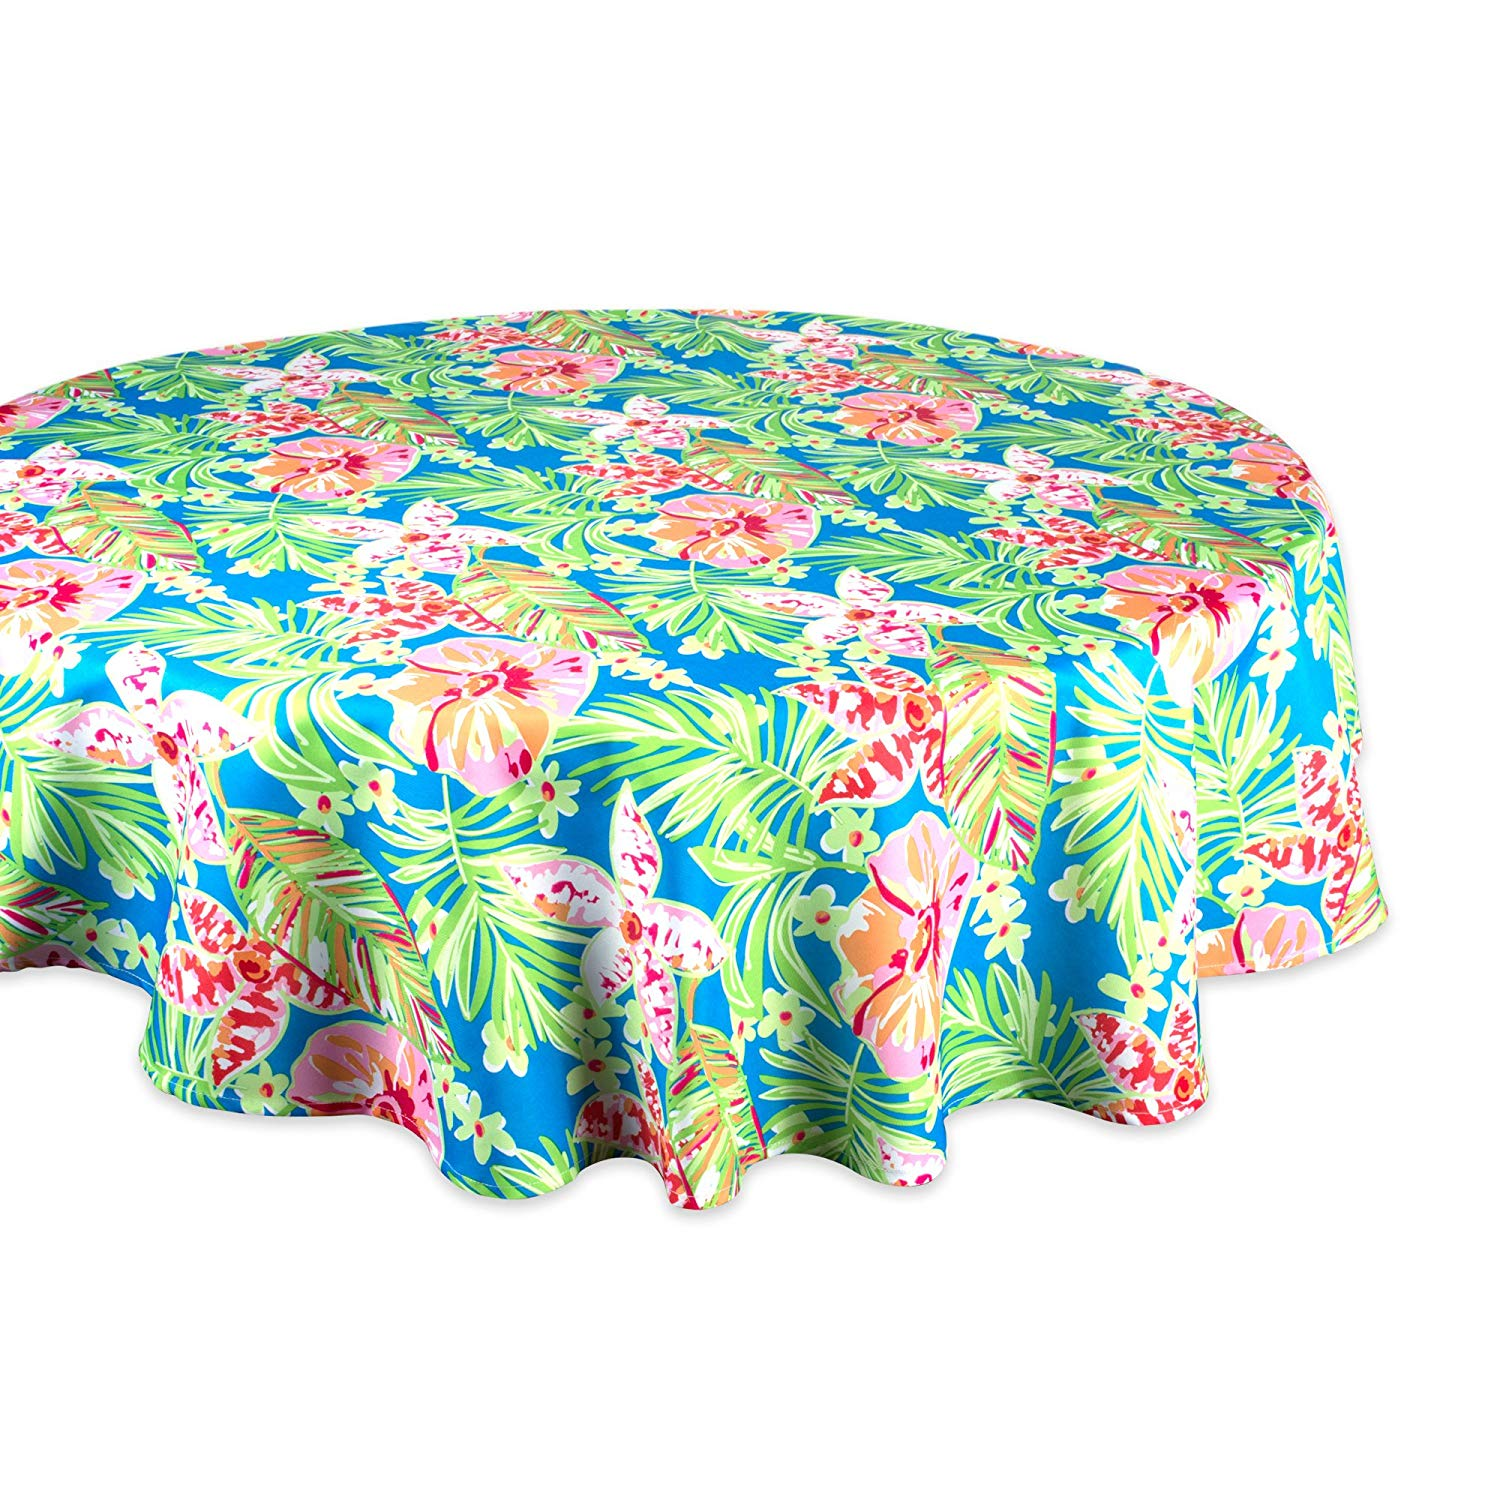 "DII Summer Floral Outdoor Round Tablecloth, 60"" Round, 100% Polyester, Multiple Sizes"